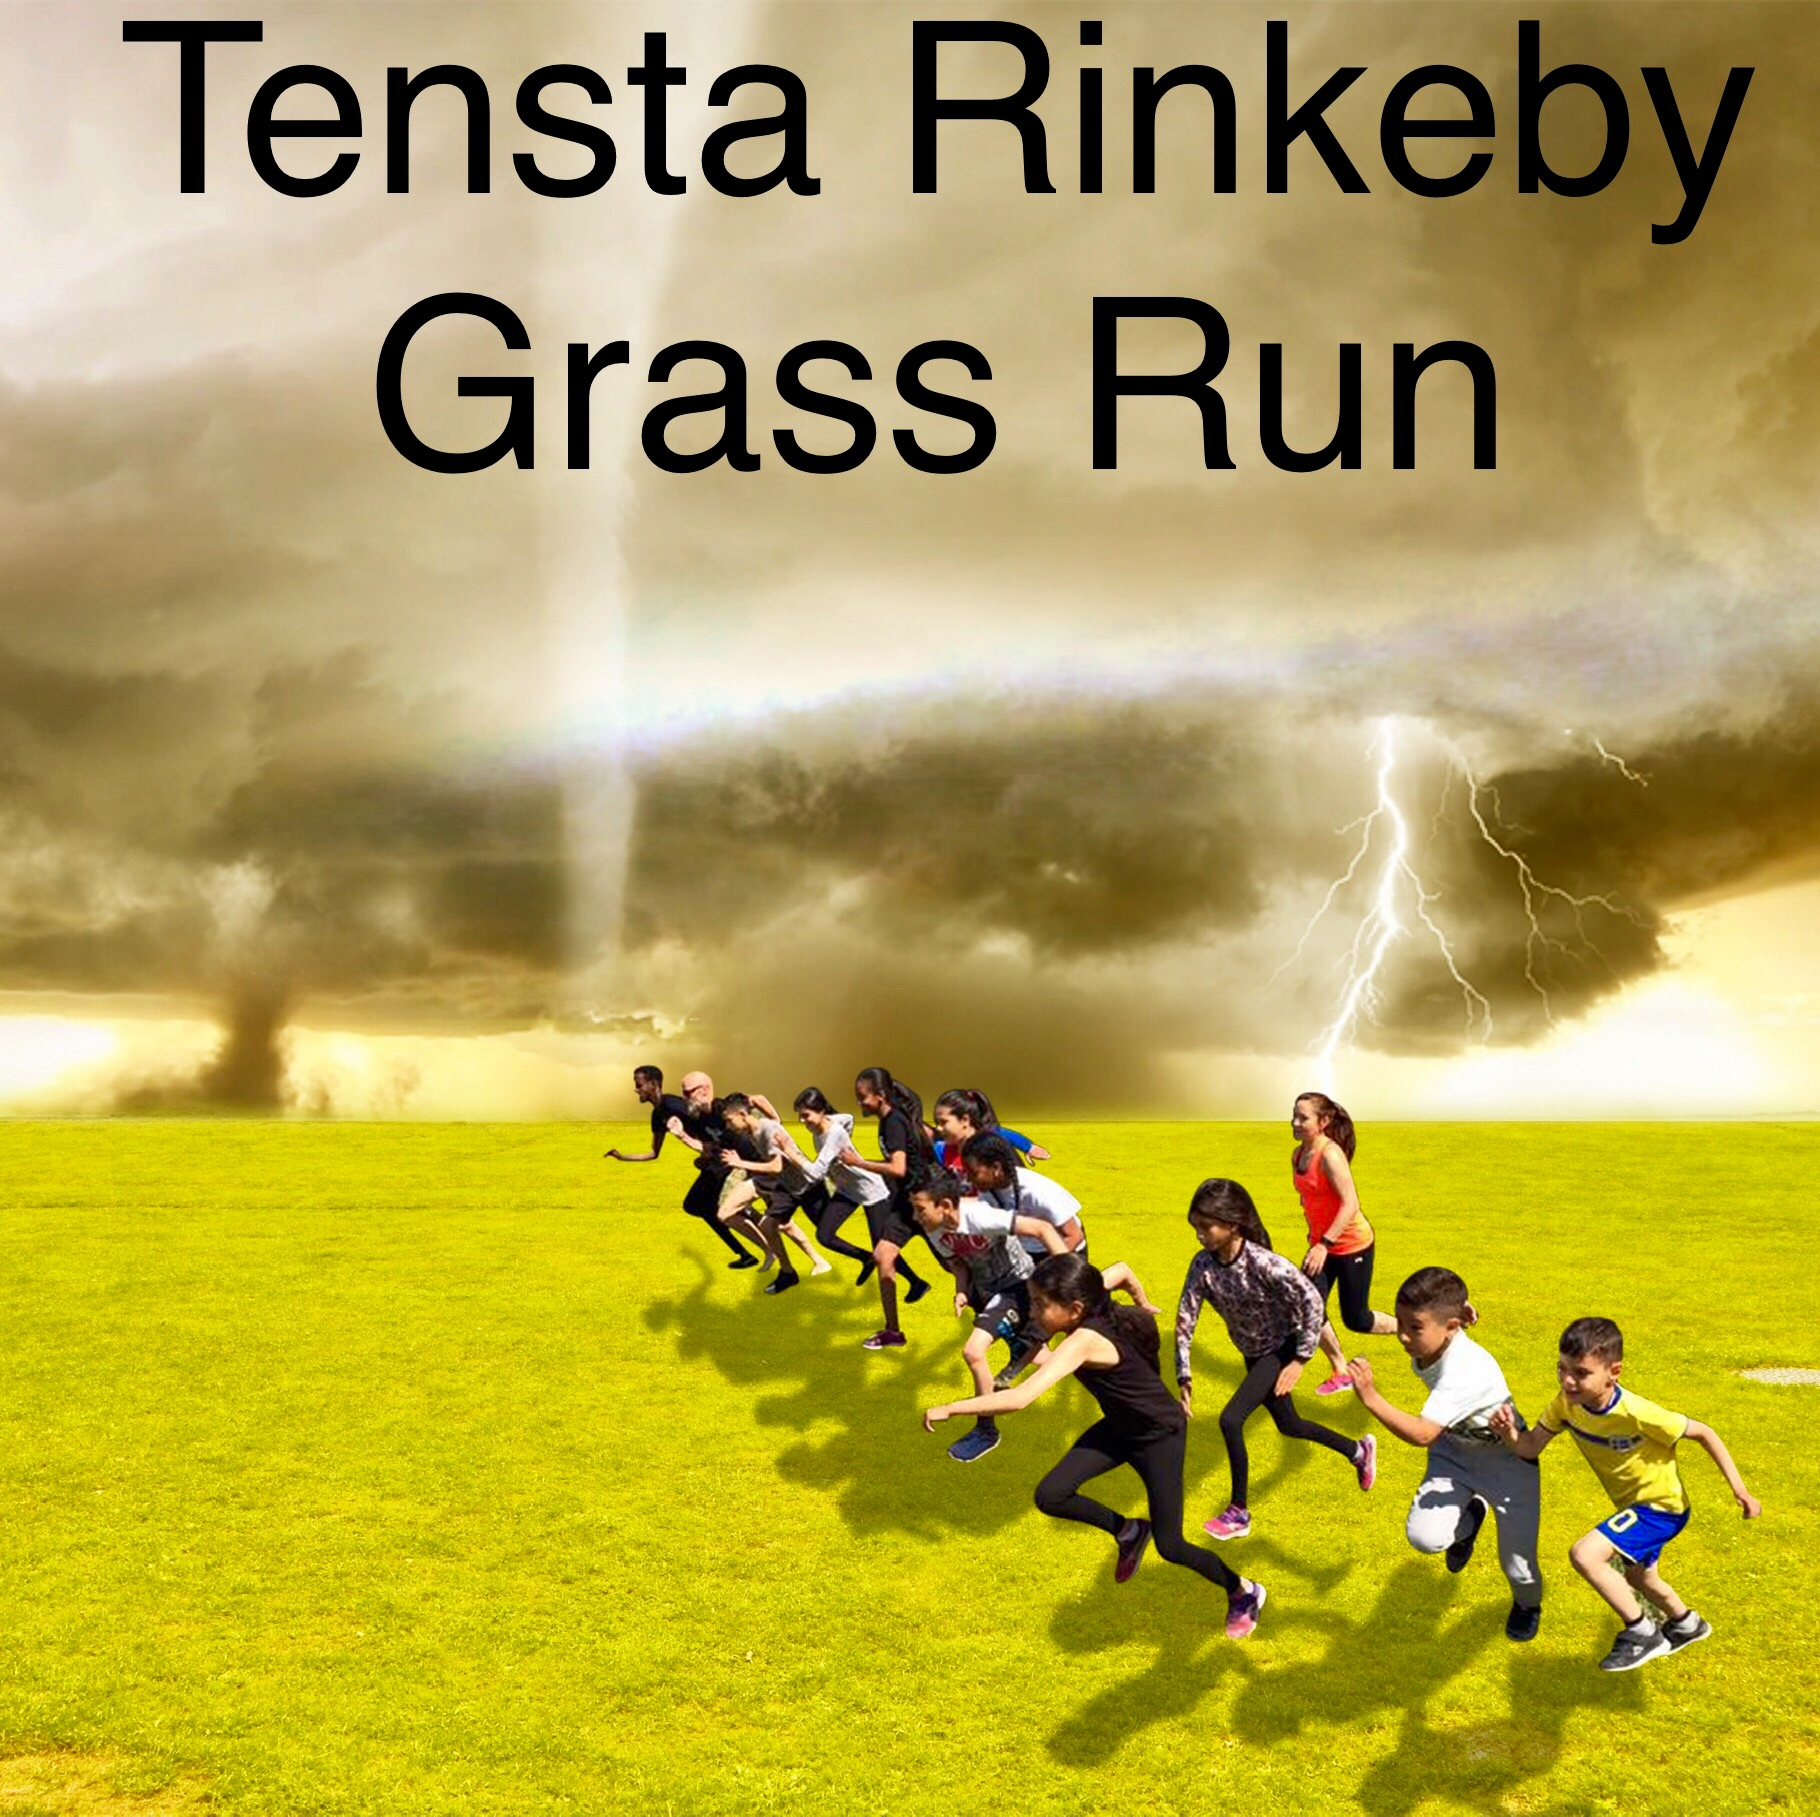 Start i Tensta Rinkeby Grass Run